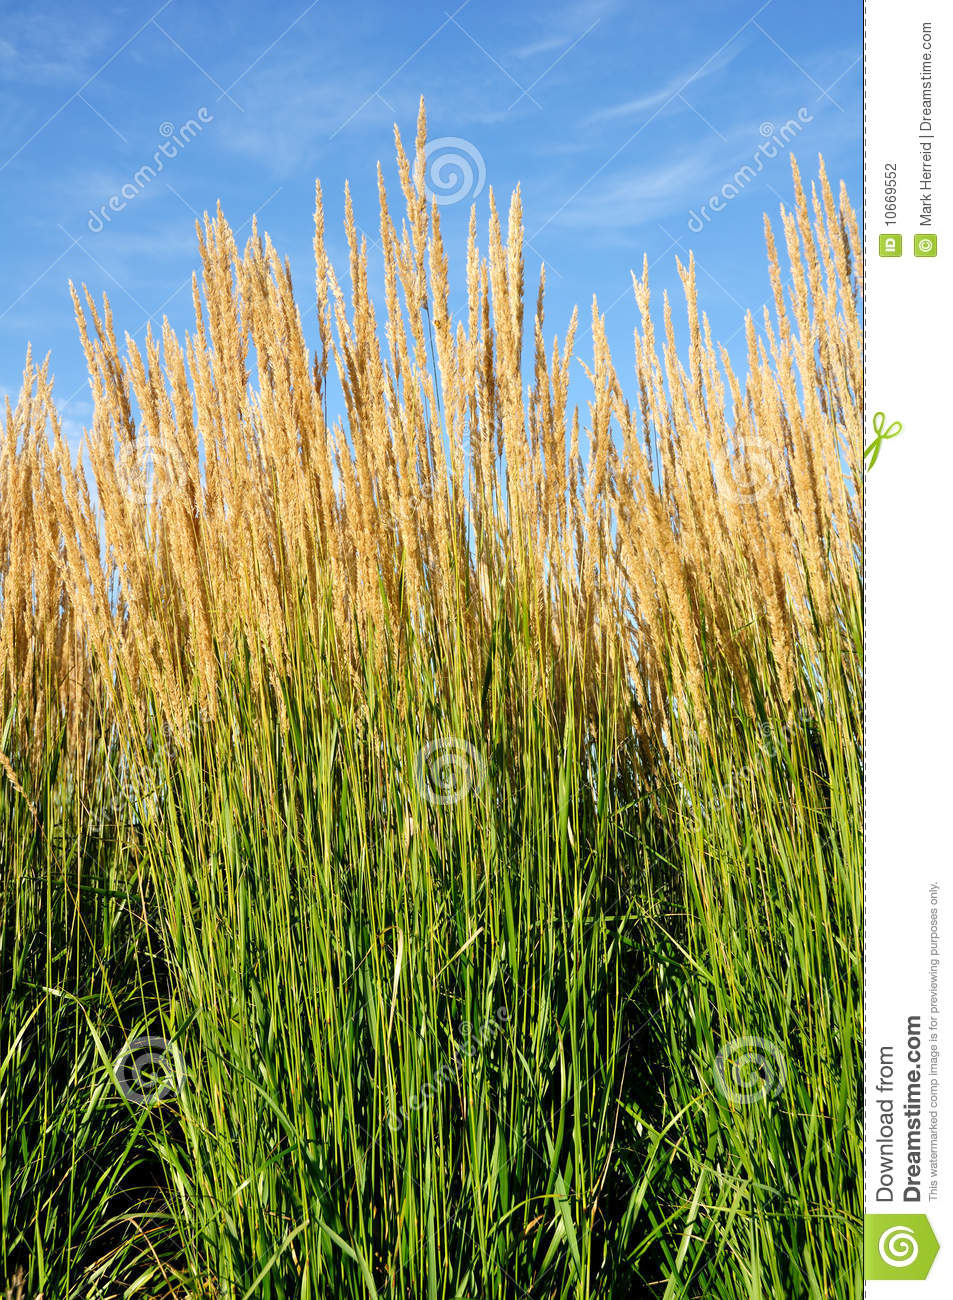 Ornamental karl foerster feather reed grass stock for Ornamental feather grass